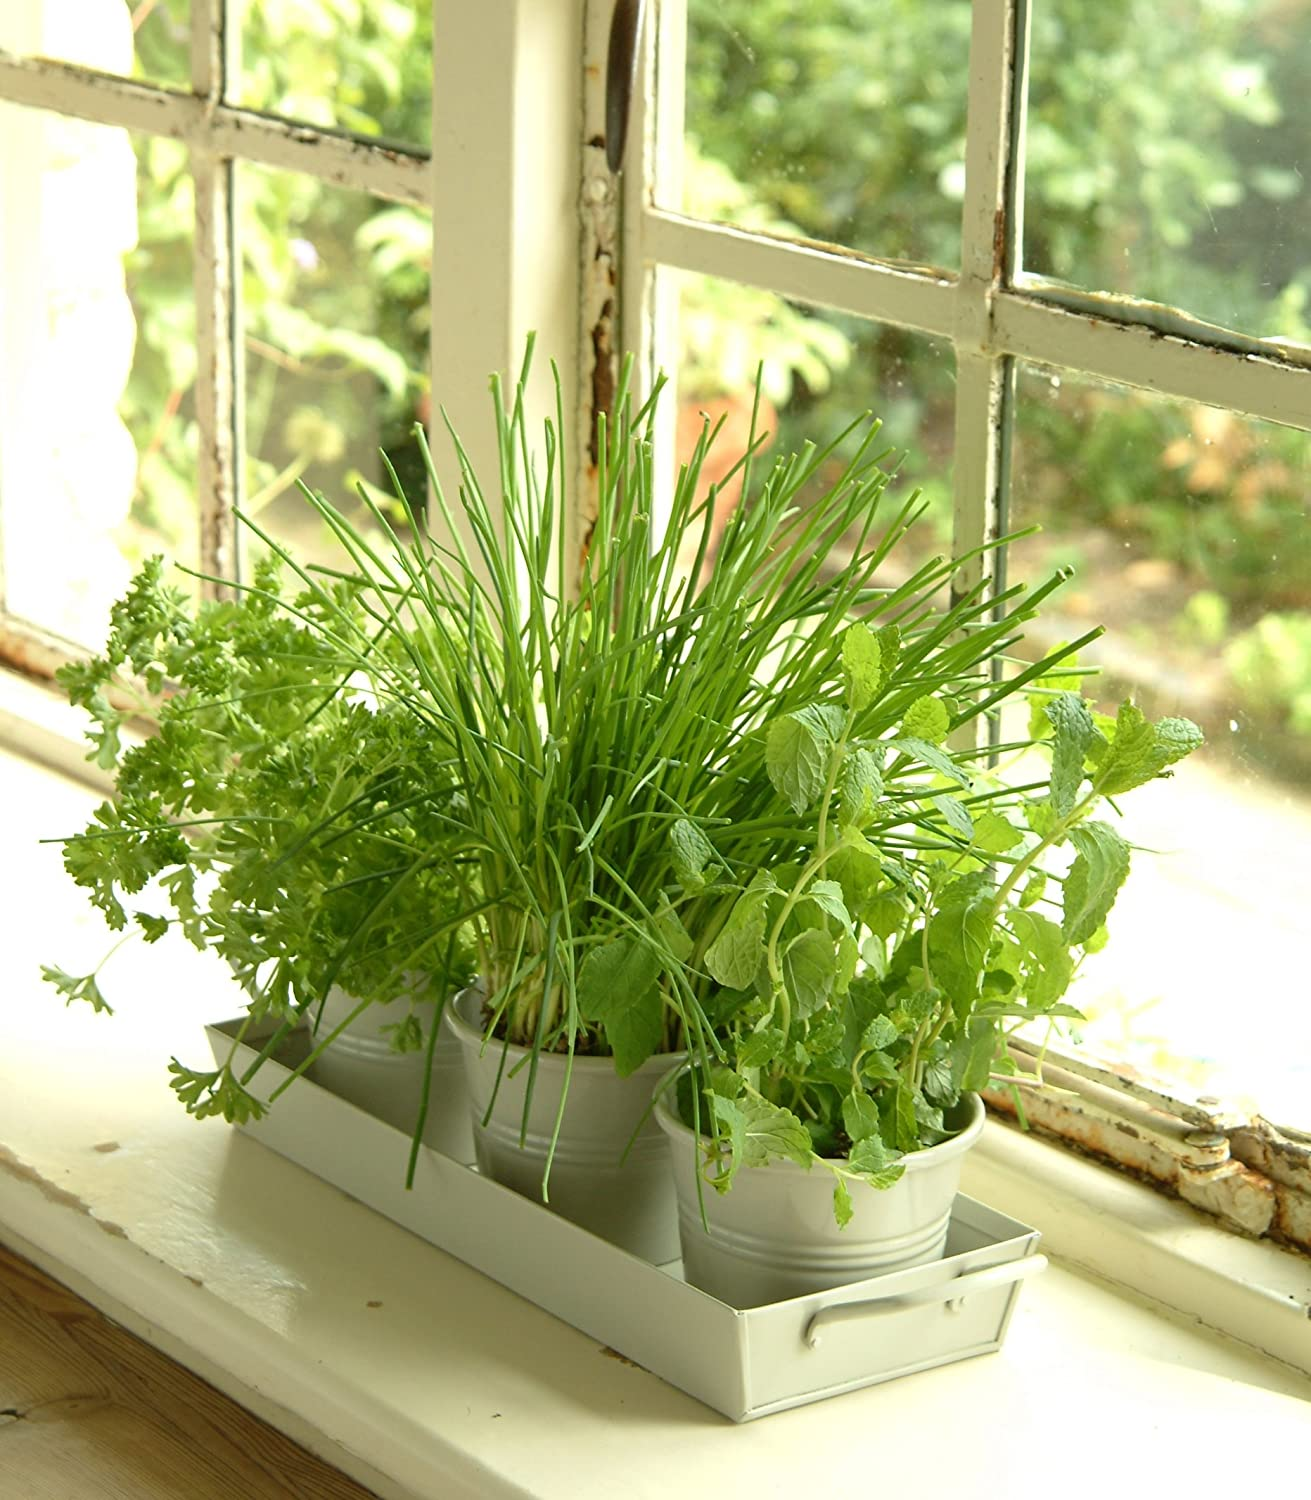 Kitchen Herb Garden Indoor: Kitchen Herb Pots Wooden Planter Window Sill Garden Plant